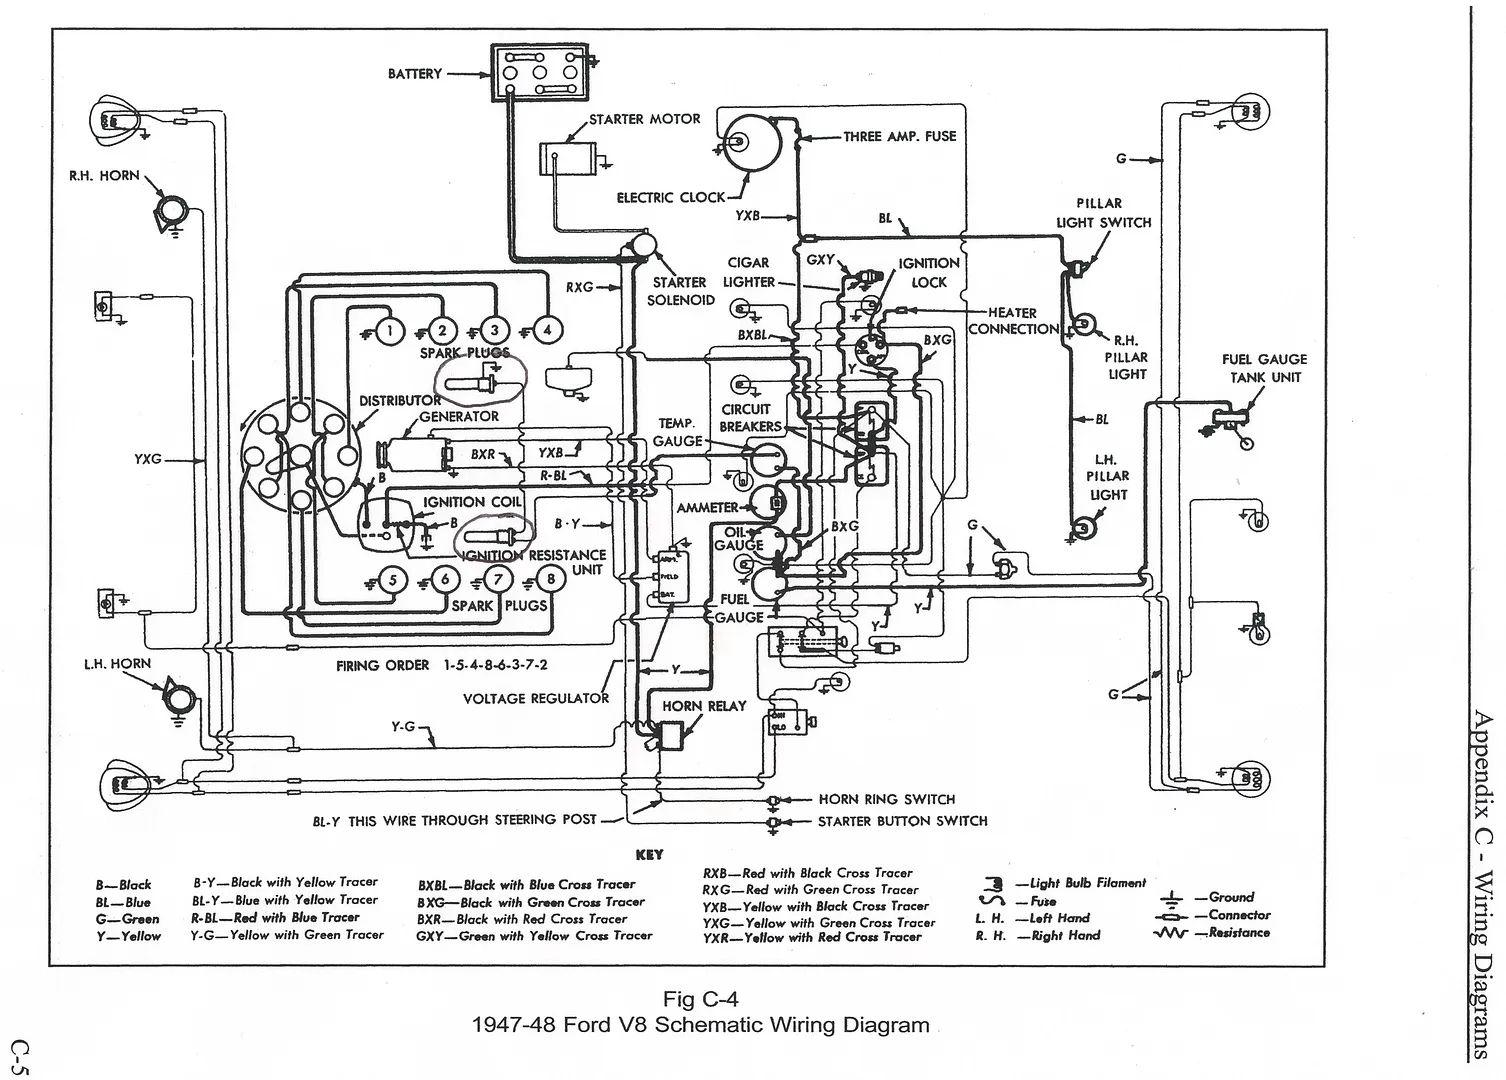 ford f650 fuel gauge wiring diagram